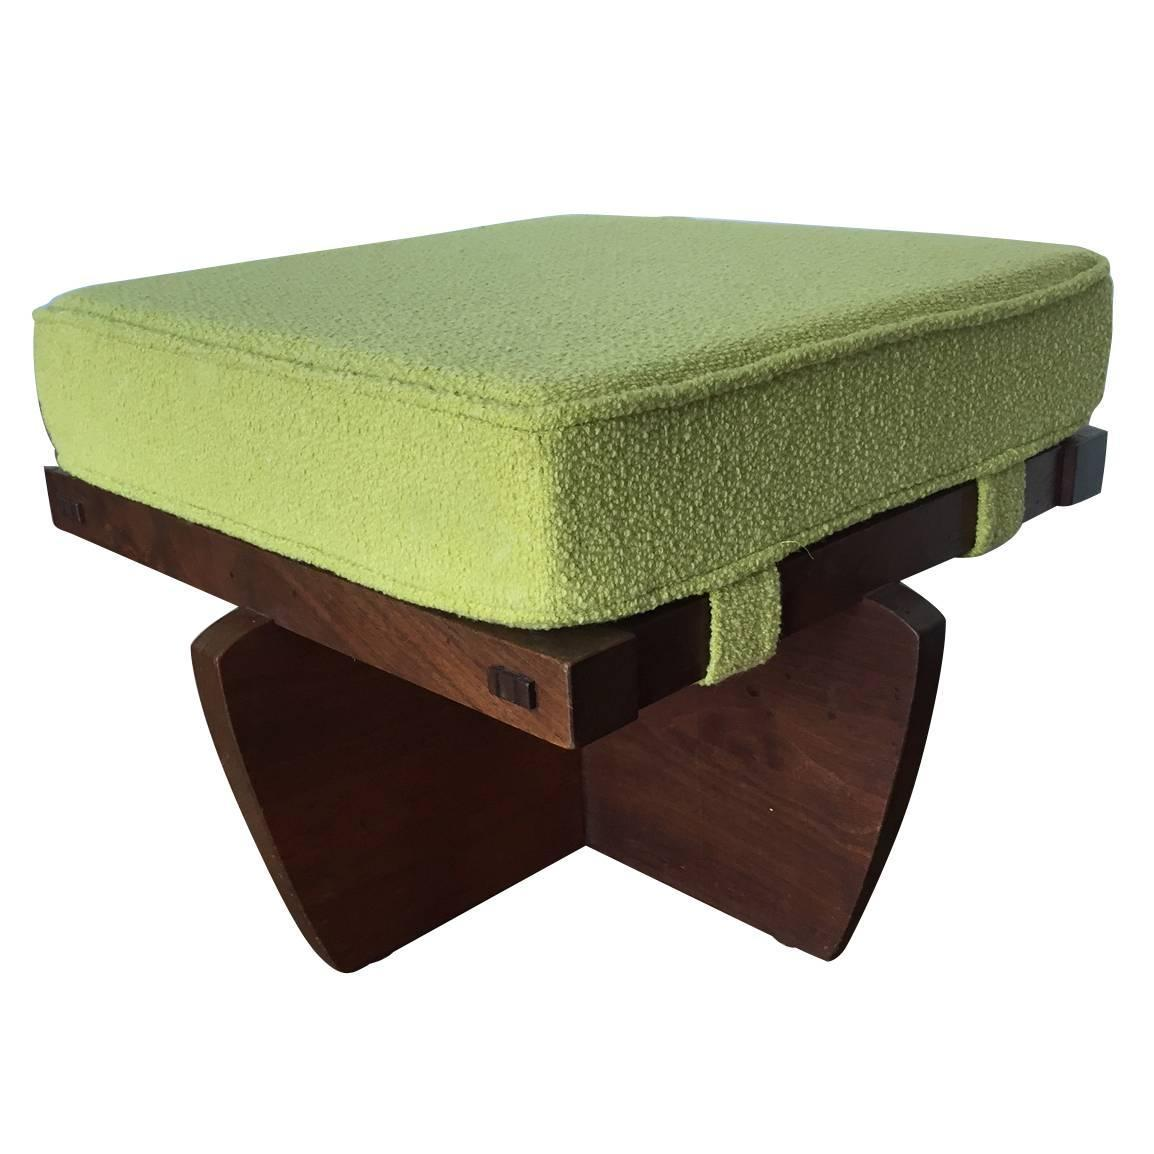 Walnut Greenrock Stool Or Bench With Cushion By George